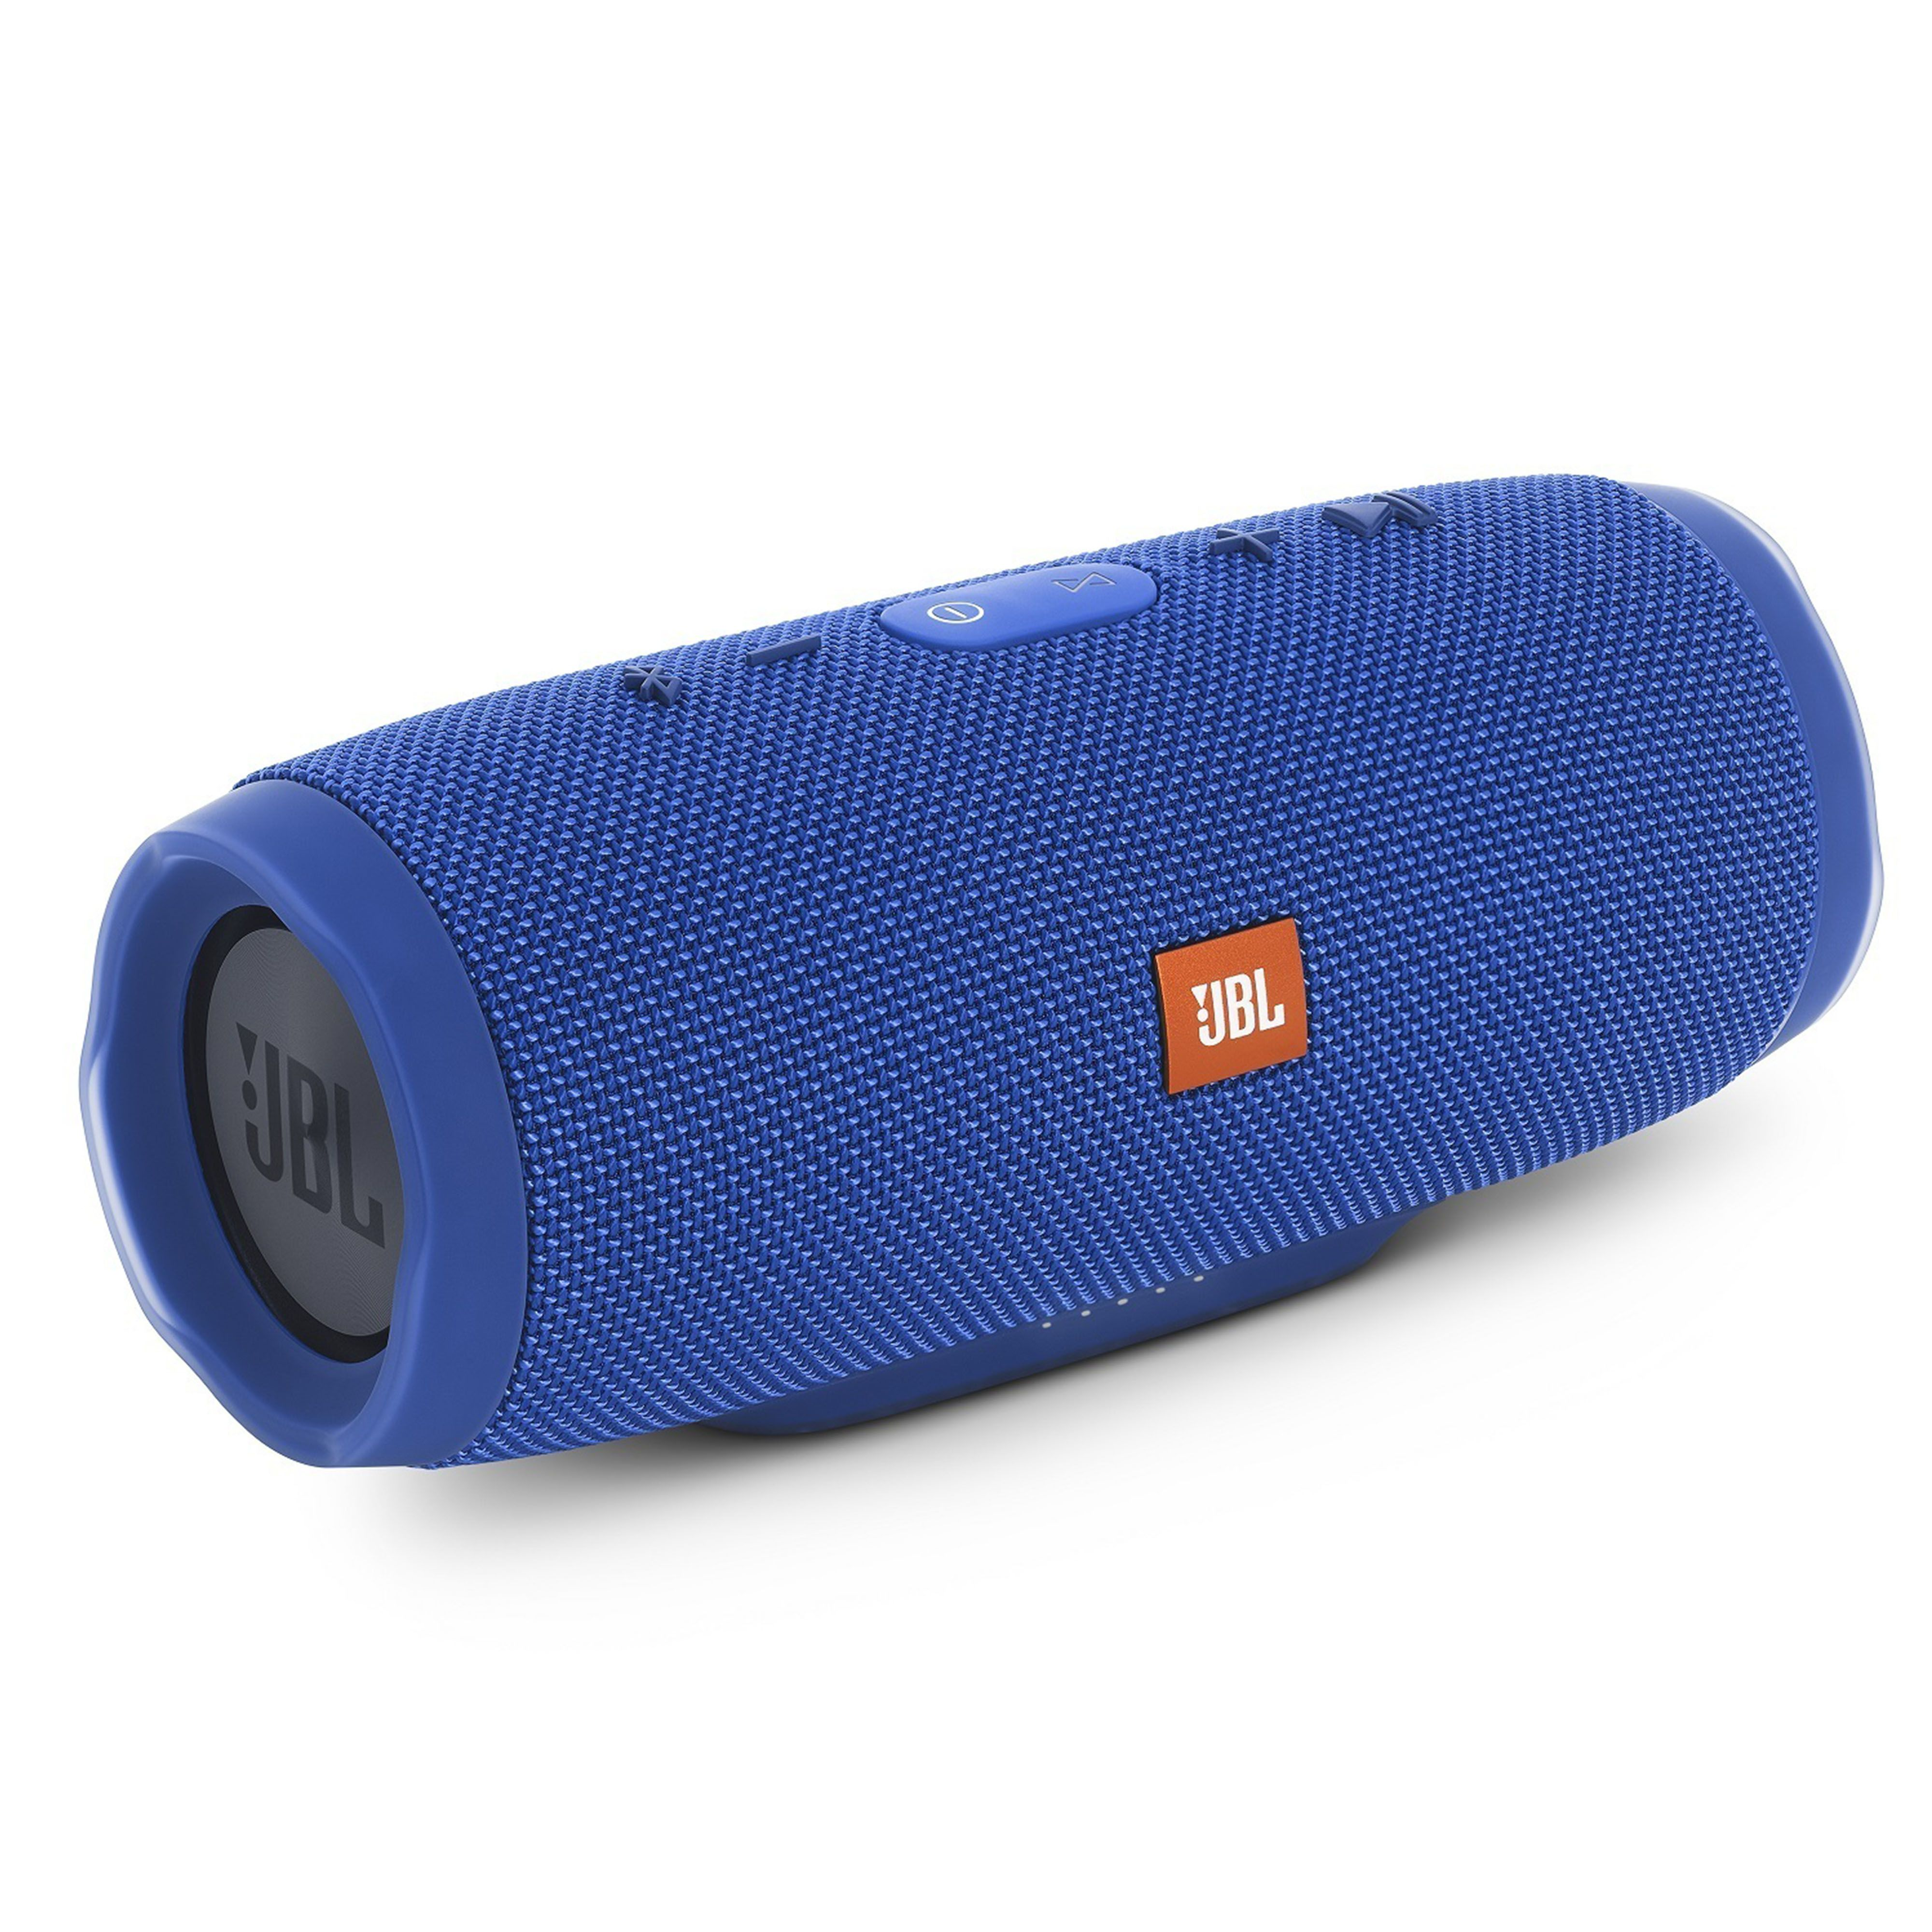 JBL Charge 3 Review - JBL Charge 3 Price and Features